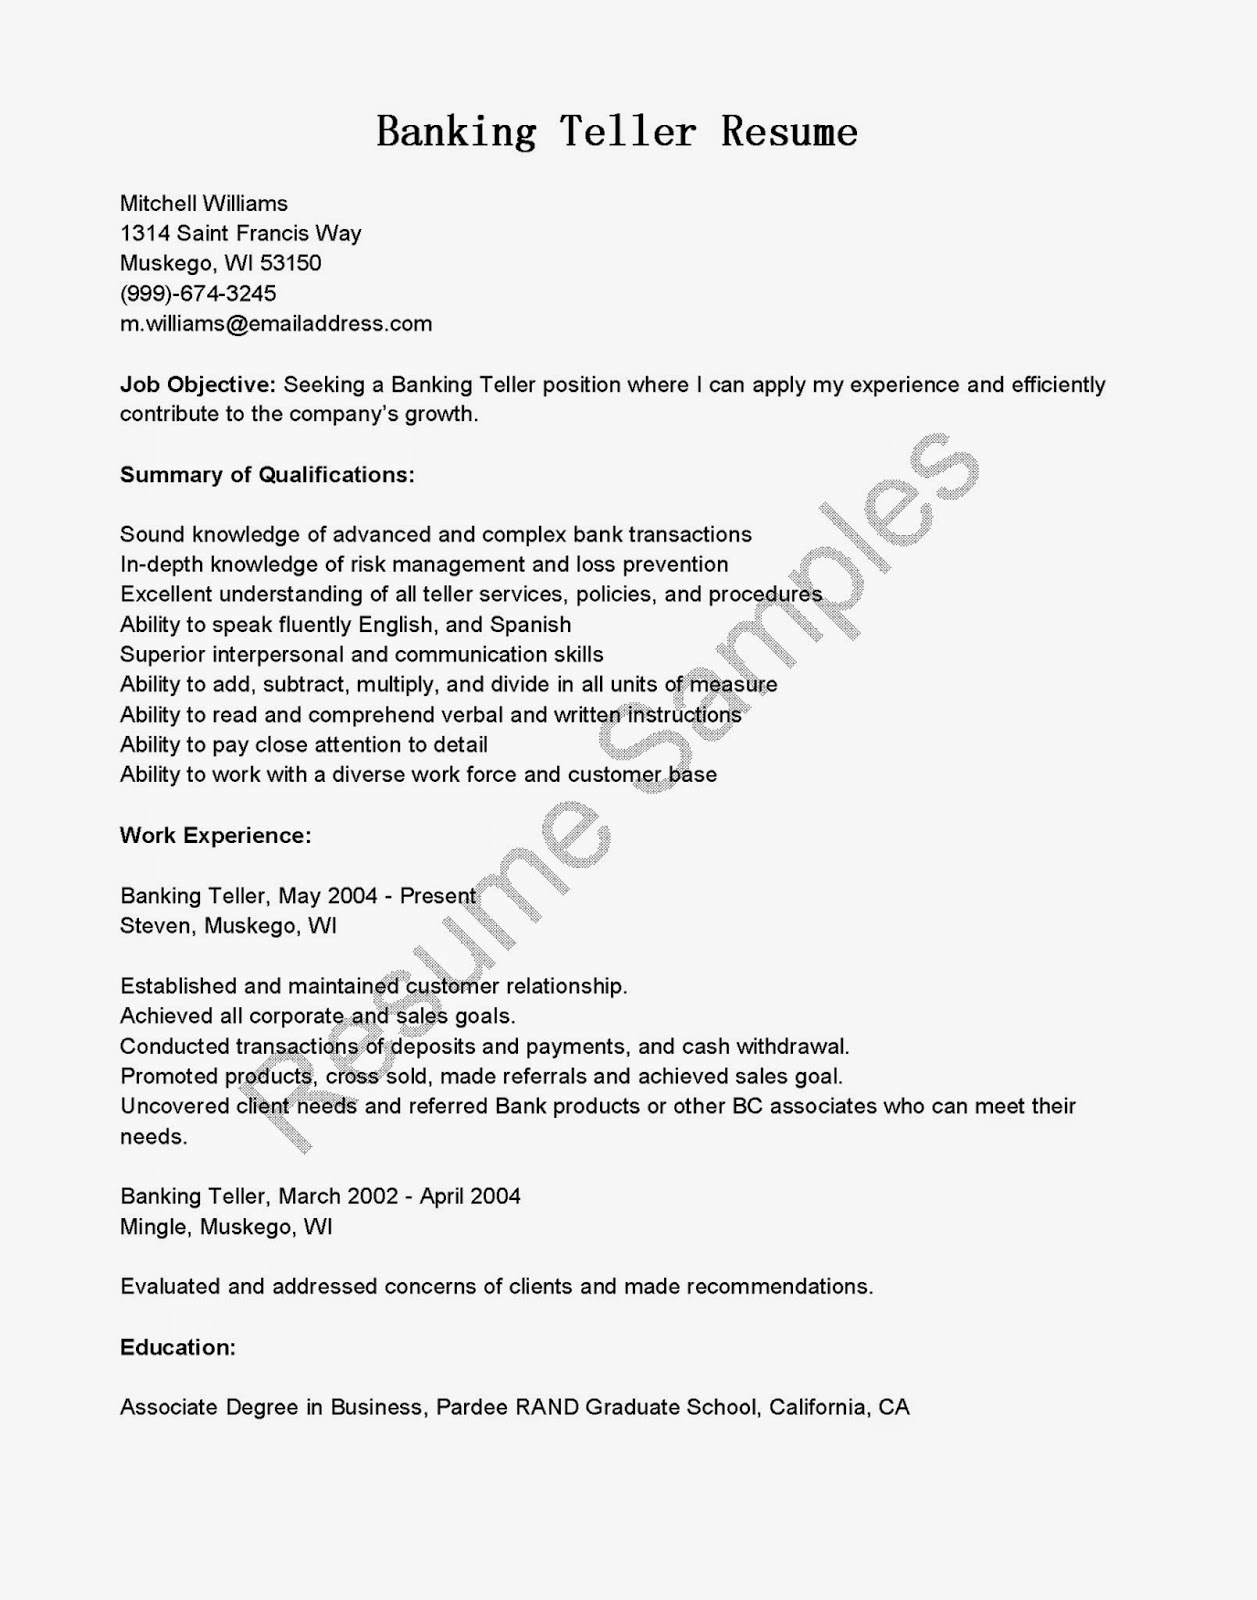 Resume Samples Banking Teller Resume Sample